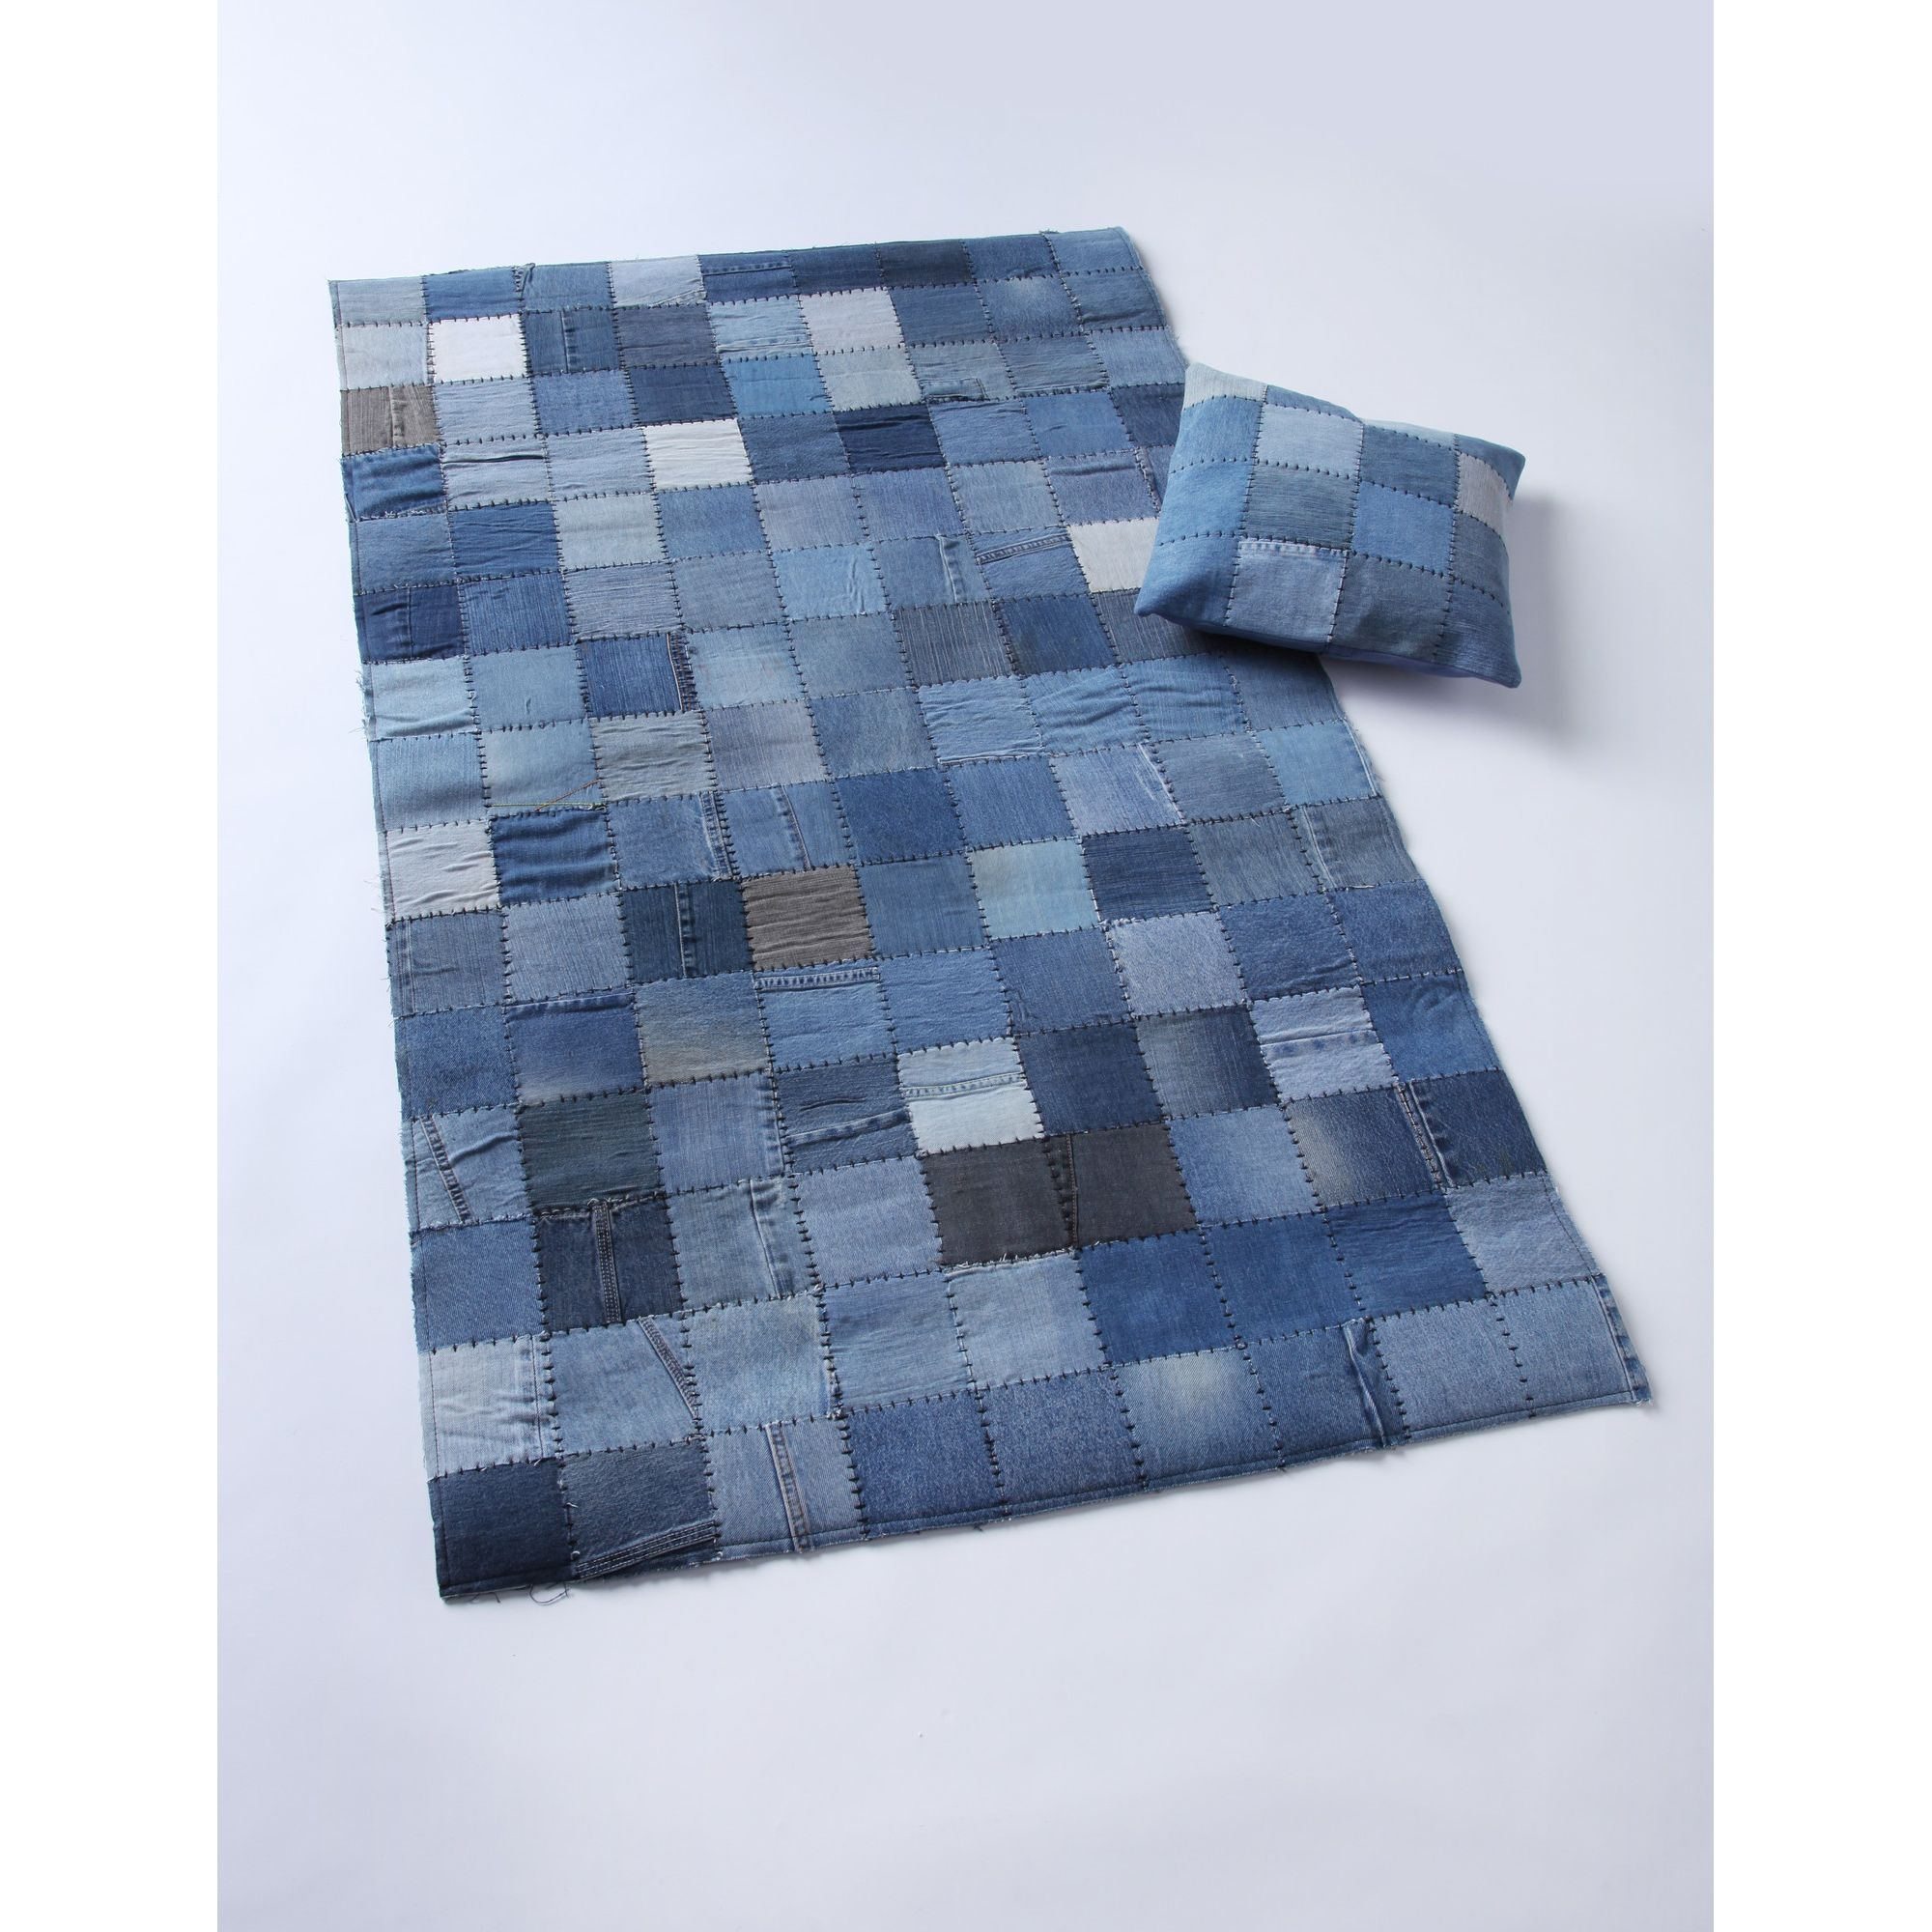 Wilkinson Furniture Cargo Rug in Distressed Blue - Small